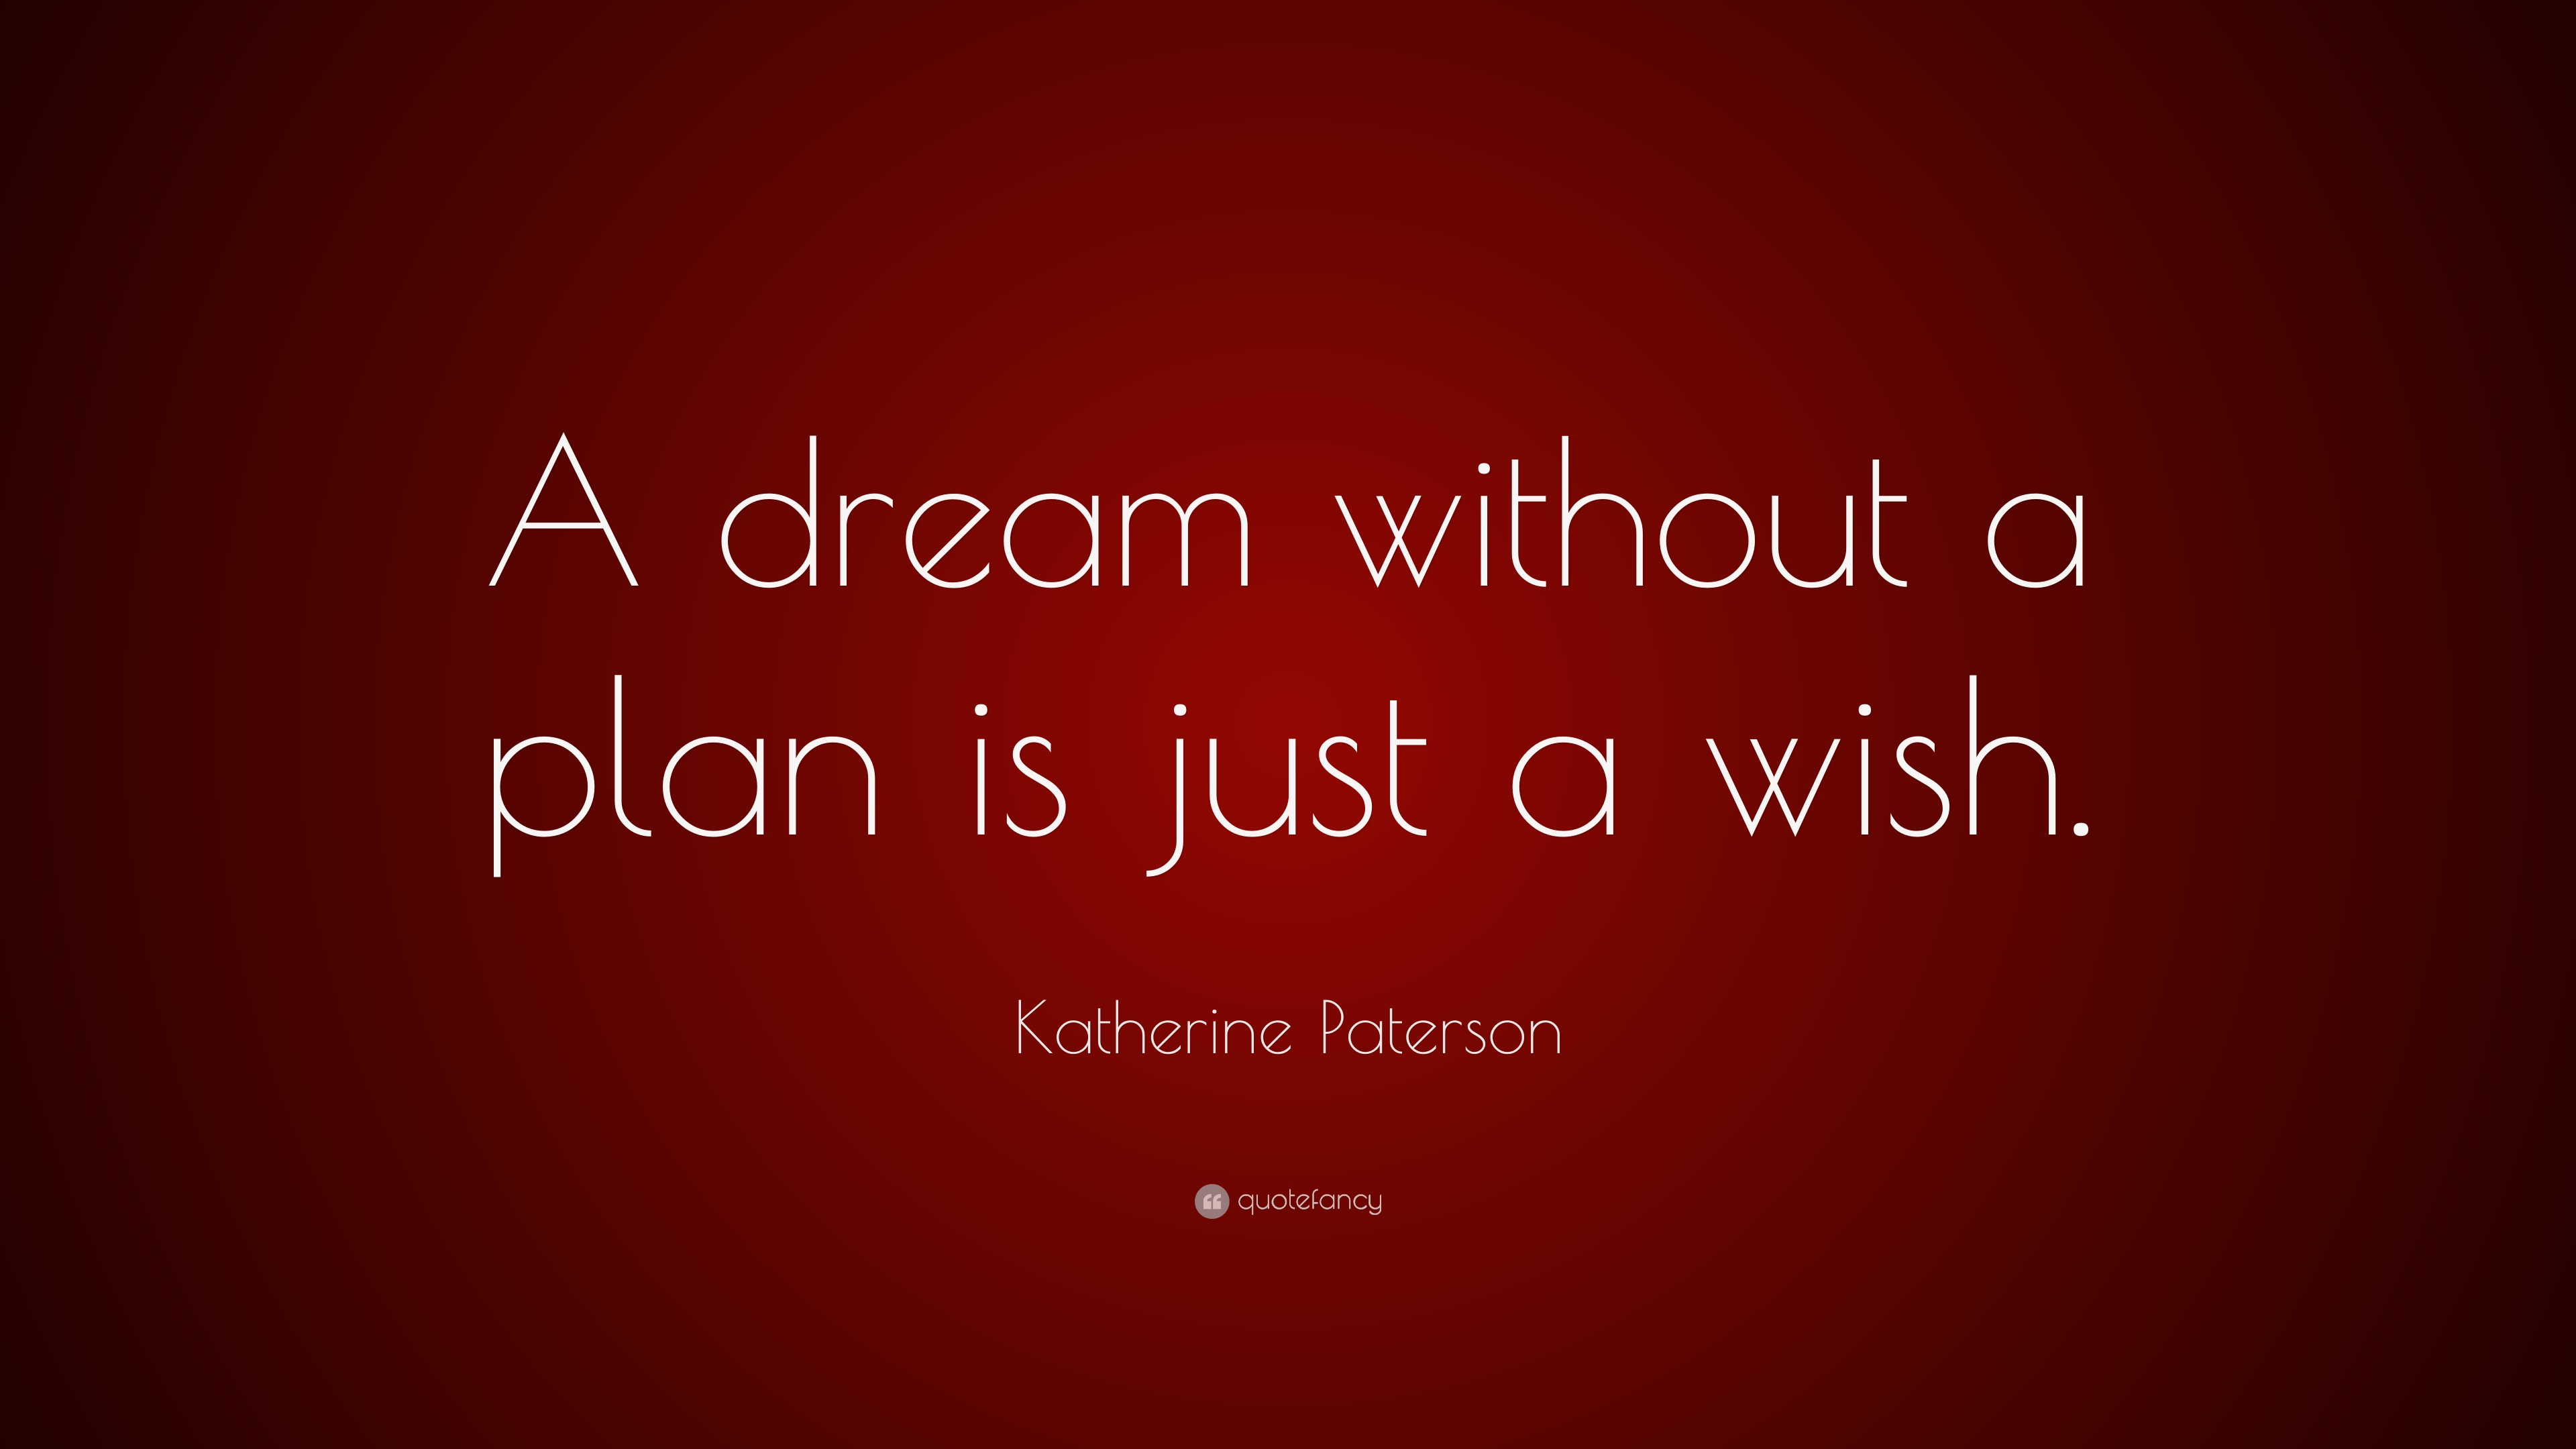 Katherine Paterson Quote: U201cA Dream Without A Plan Is Just A Wish.u201d